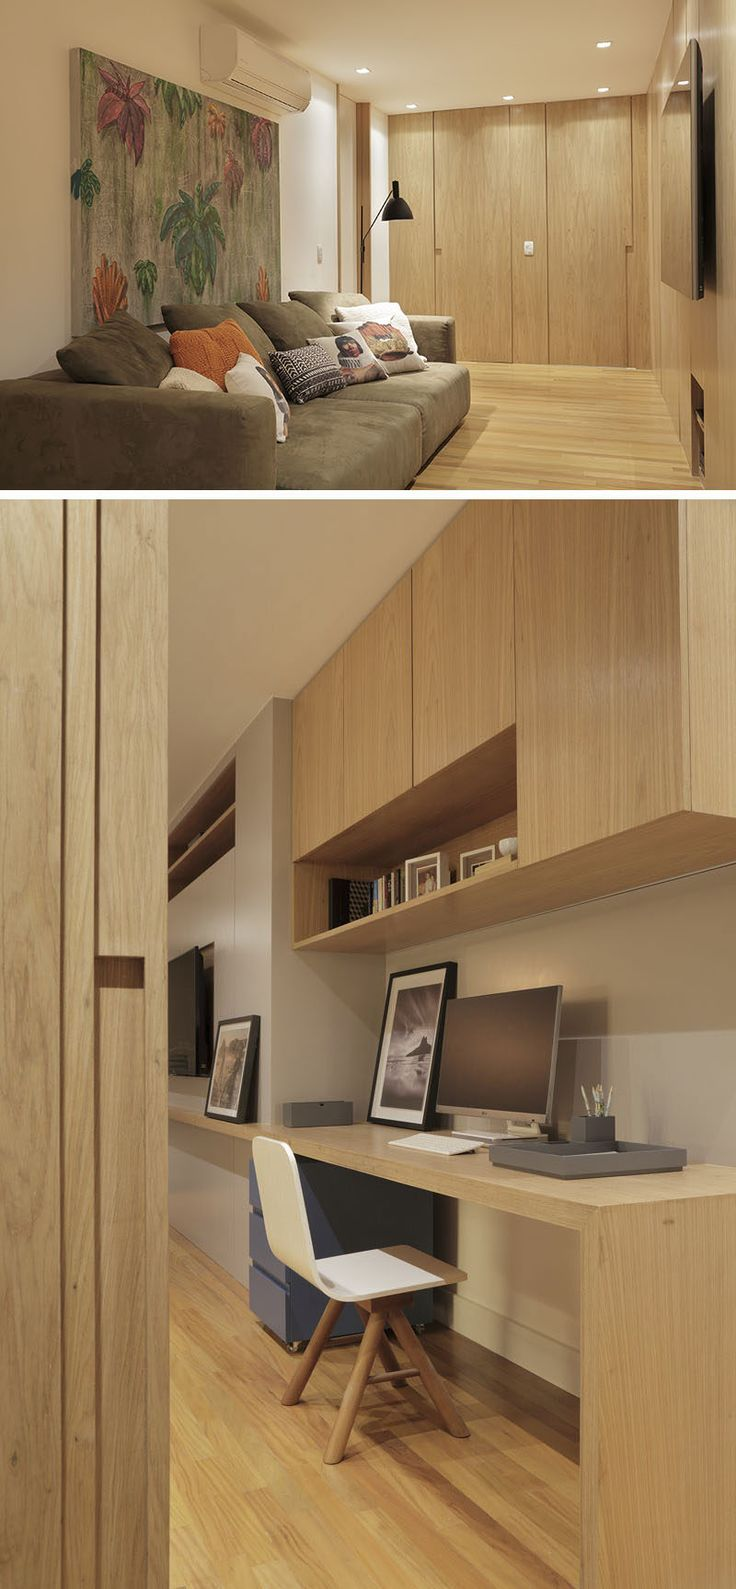 124 best W O R K space images on Pinterest | Office spaces, Office ...